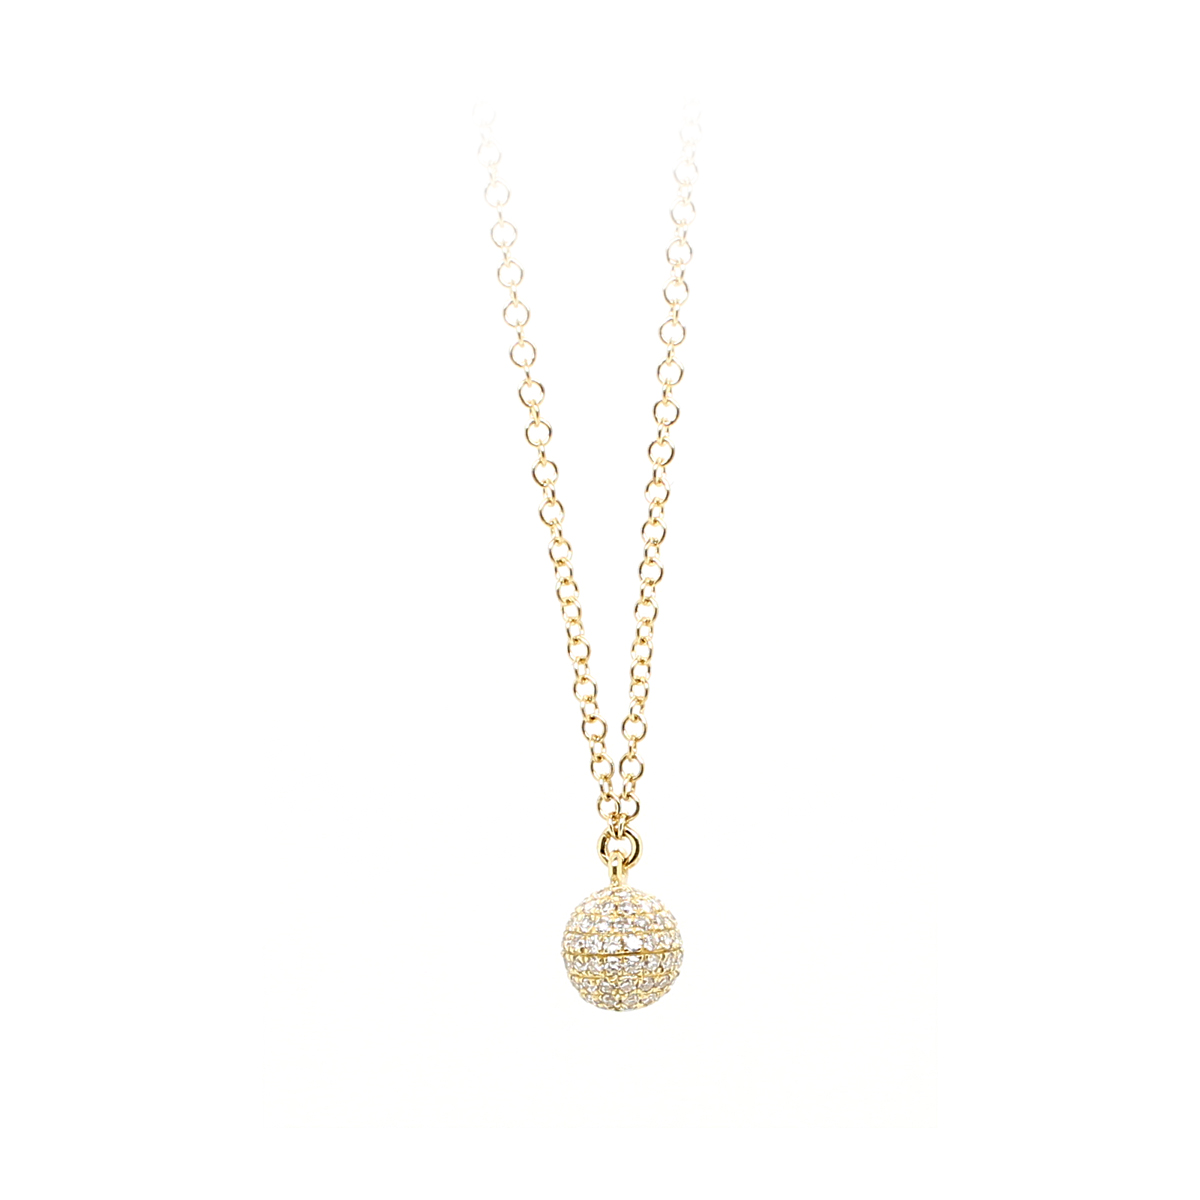 14 Karat Yellow Gold Diamond Ball Necklace